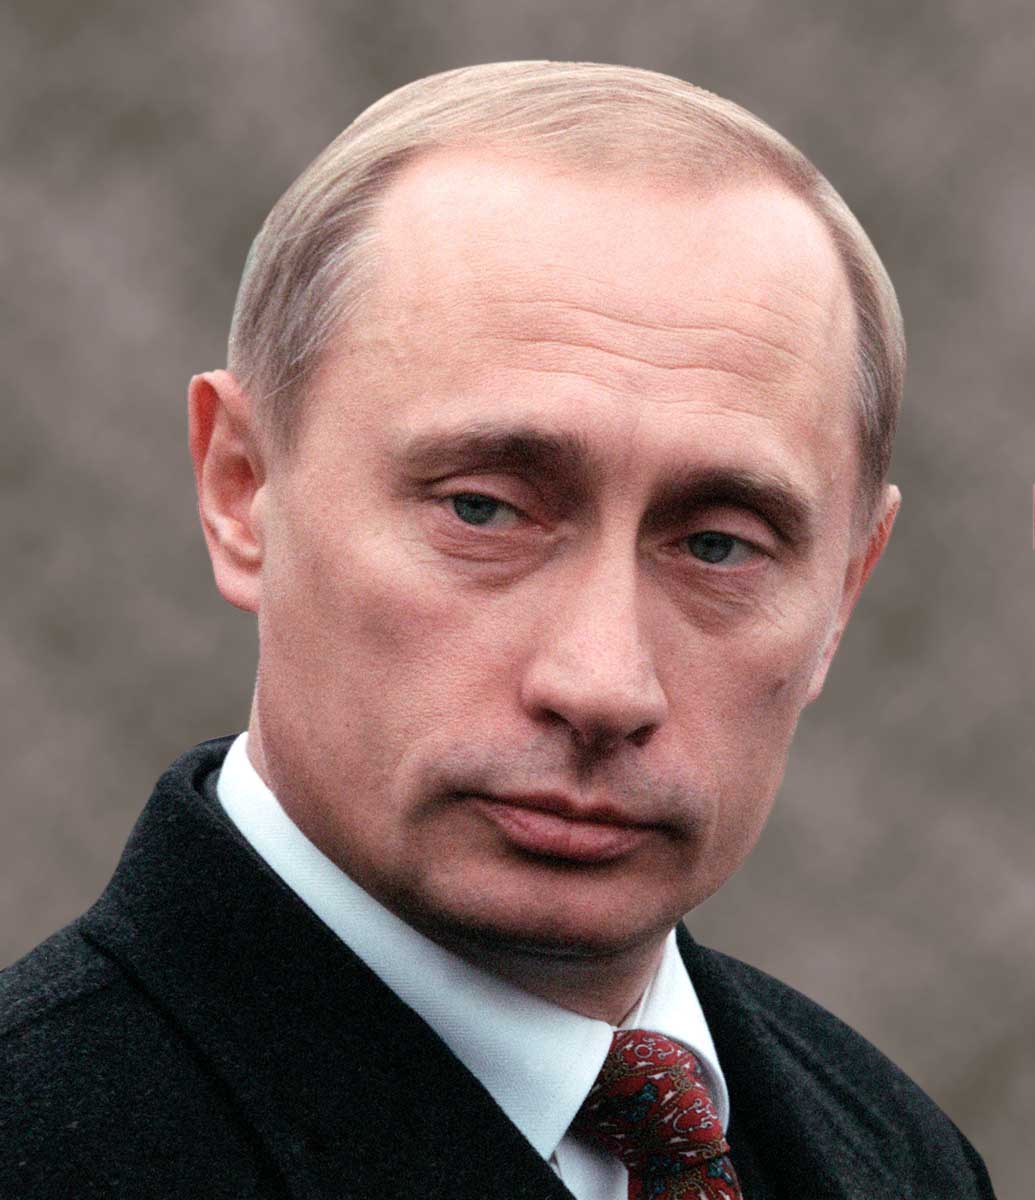 Kgb Hd Wallpapers Vladimir Putin In Un G 8